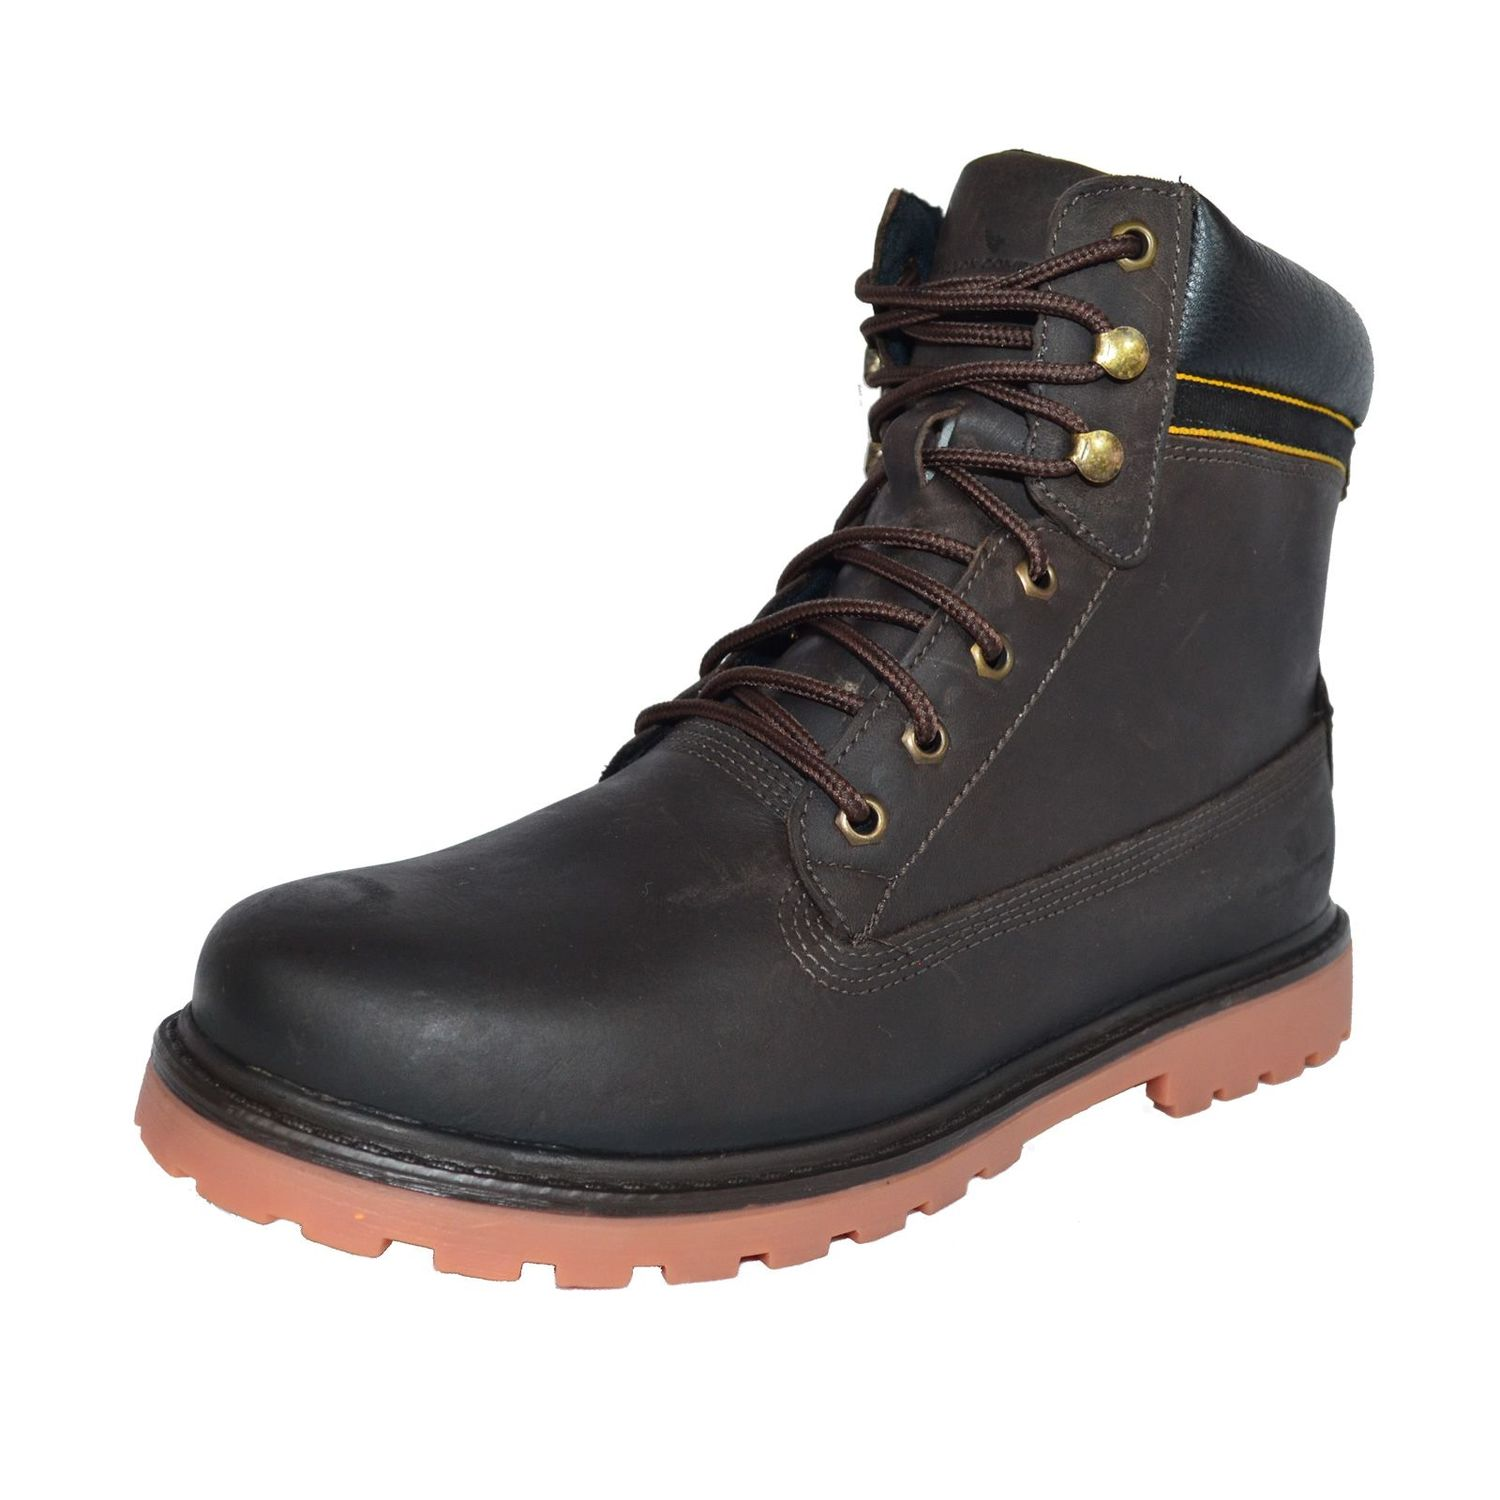 Bota Coturno Fallon & Co. Iron Head Marrom